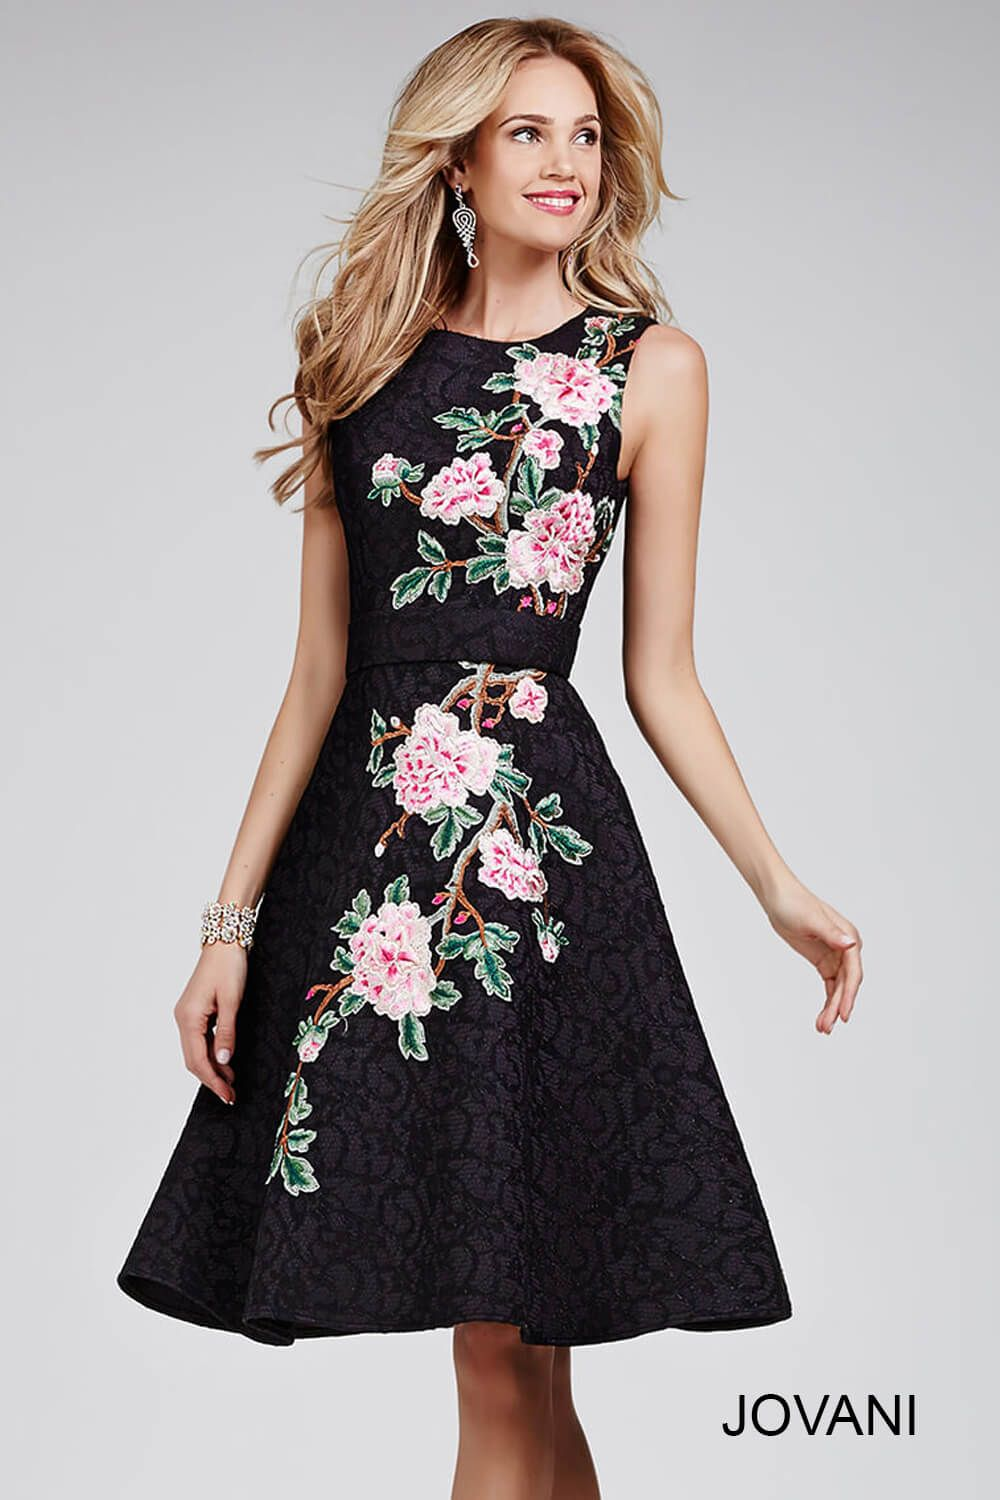 Jovani Sleeveless Fit and Flare Cocktail Dress 28219 | New Arrivals ...